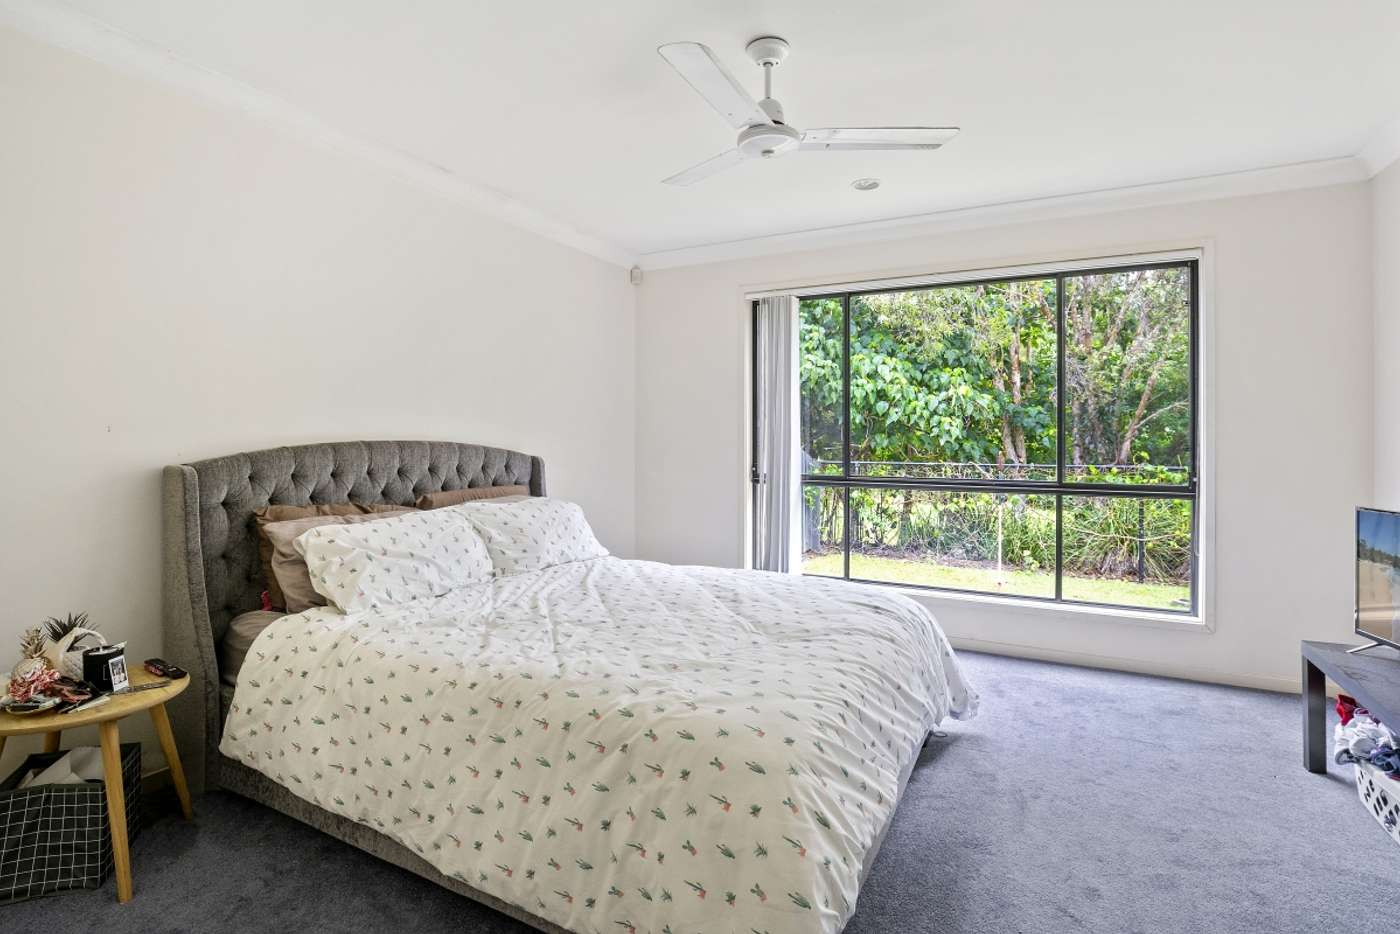 Fifth view of Homely house listing, 9 MELASTOMA WAY, Arundel QLD 4214